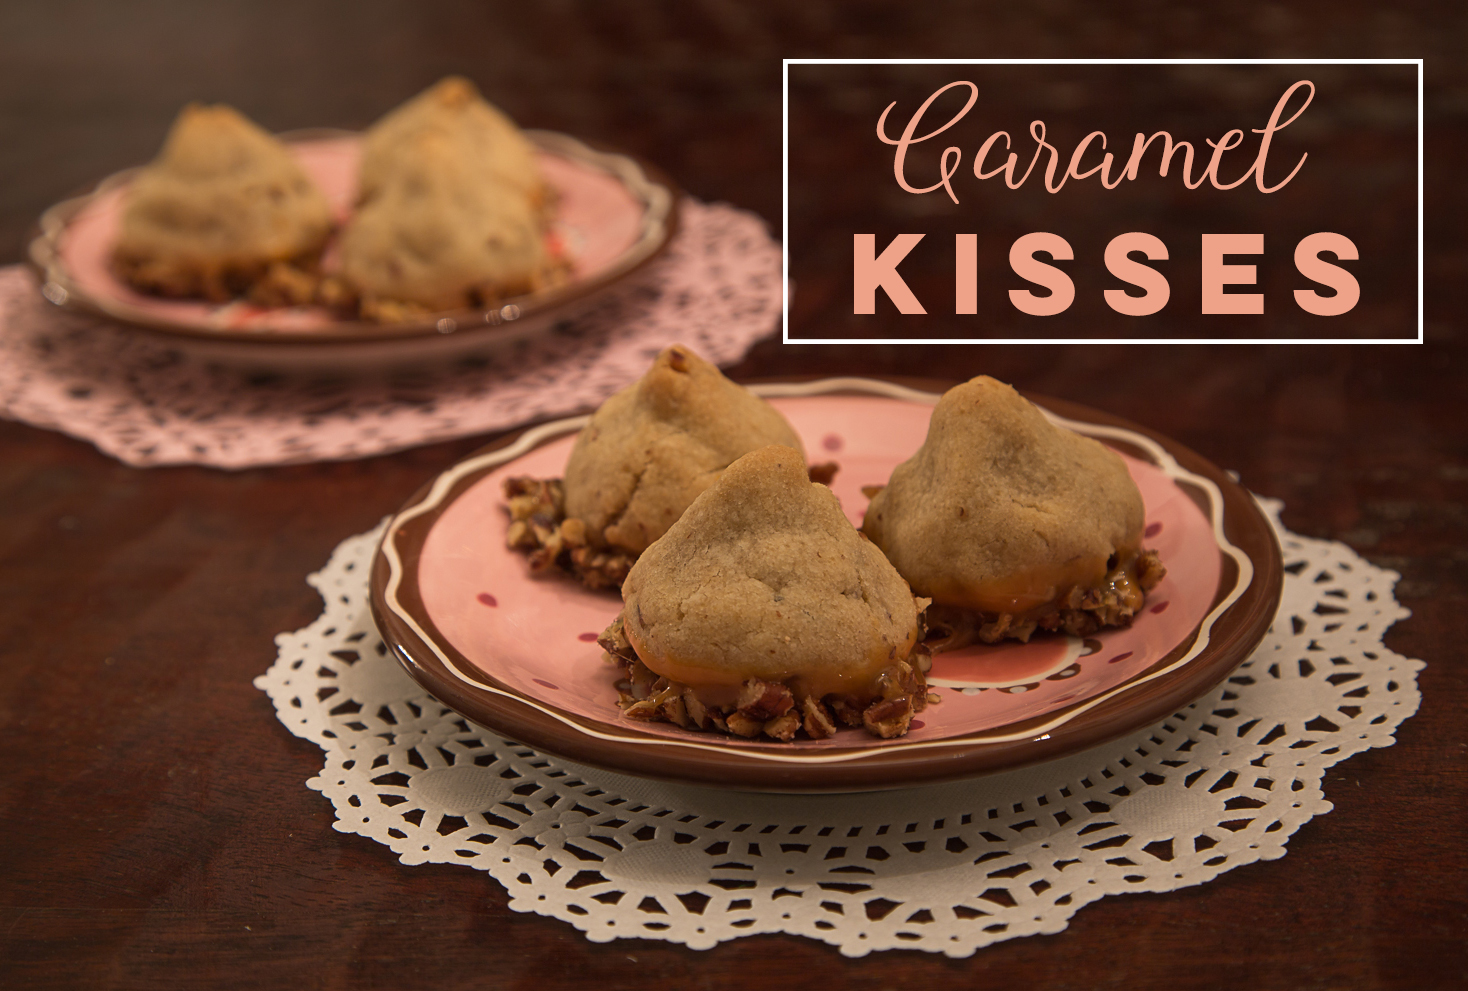 Caramel kisses - Elsie's Caramel Kisses from Roses and Revenge are the perfect treat for Valentine's Day—or, well, pretty much any day! Click the photo for recipe.